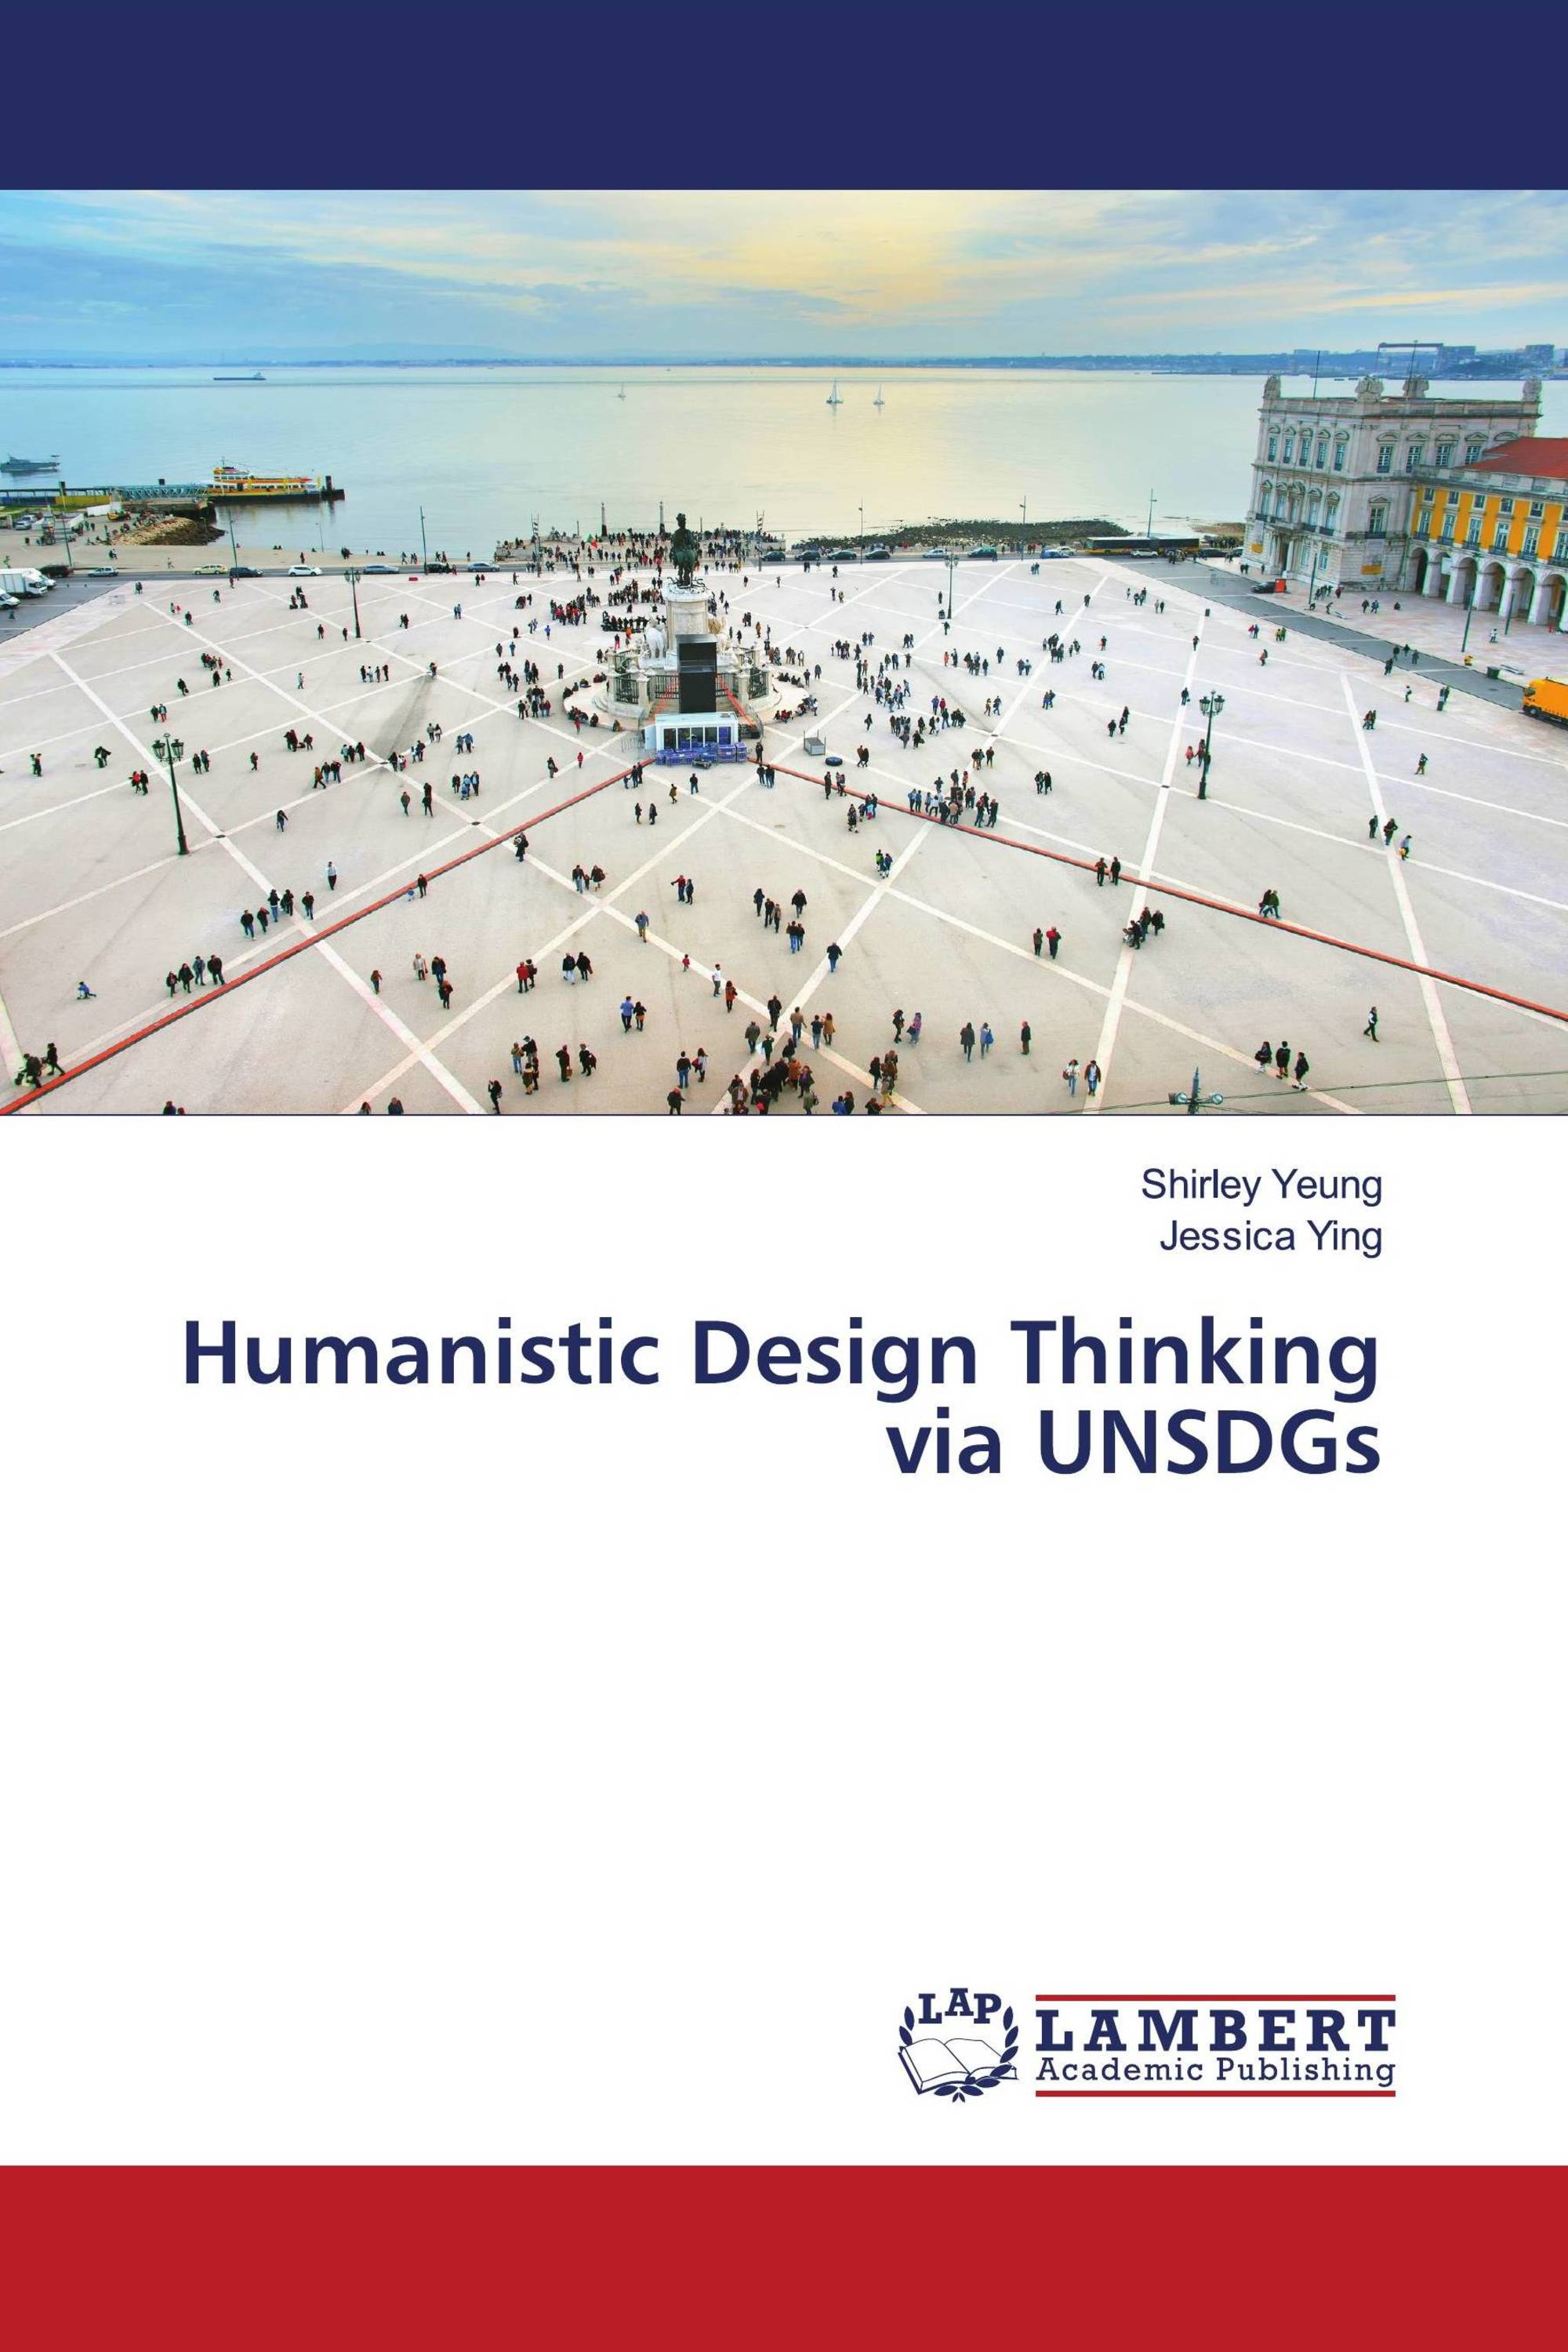 Humanistic Design Thinking via UNSDGs